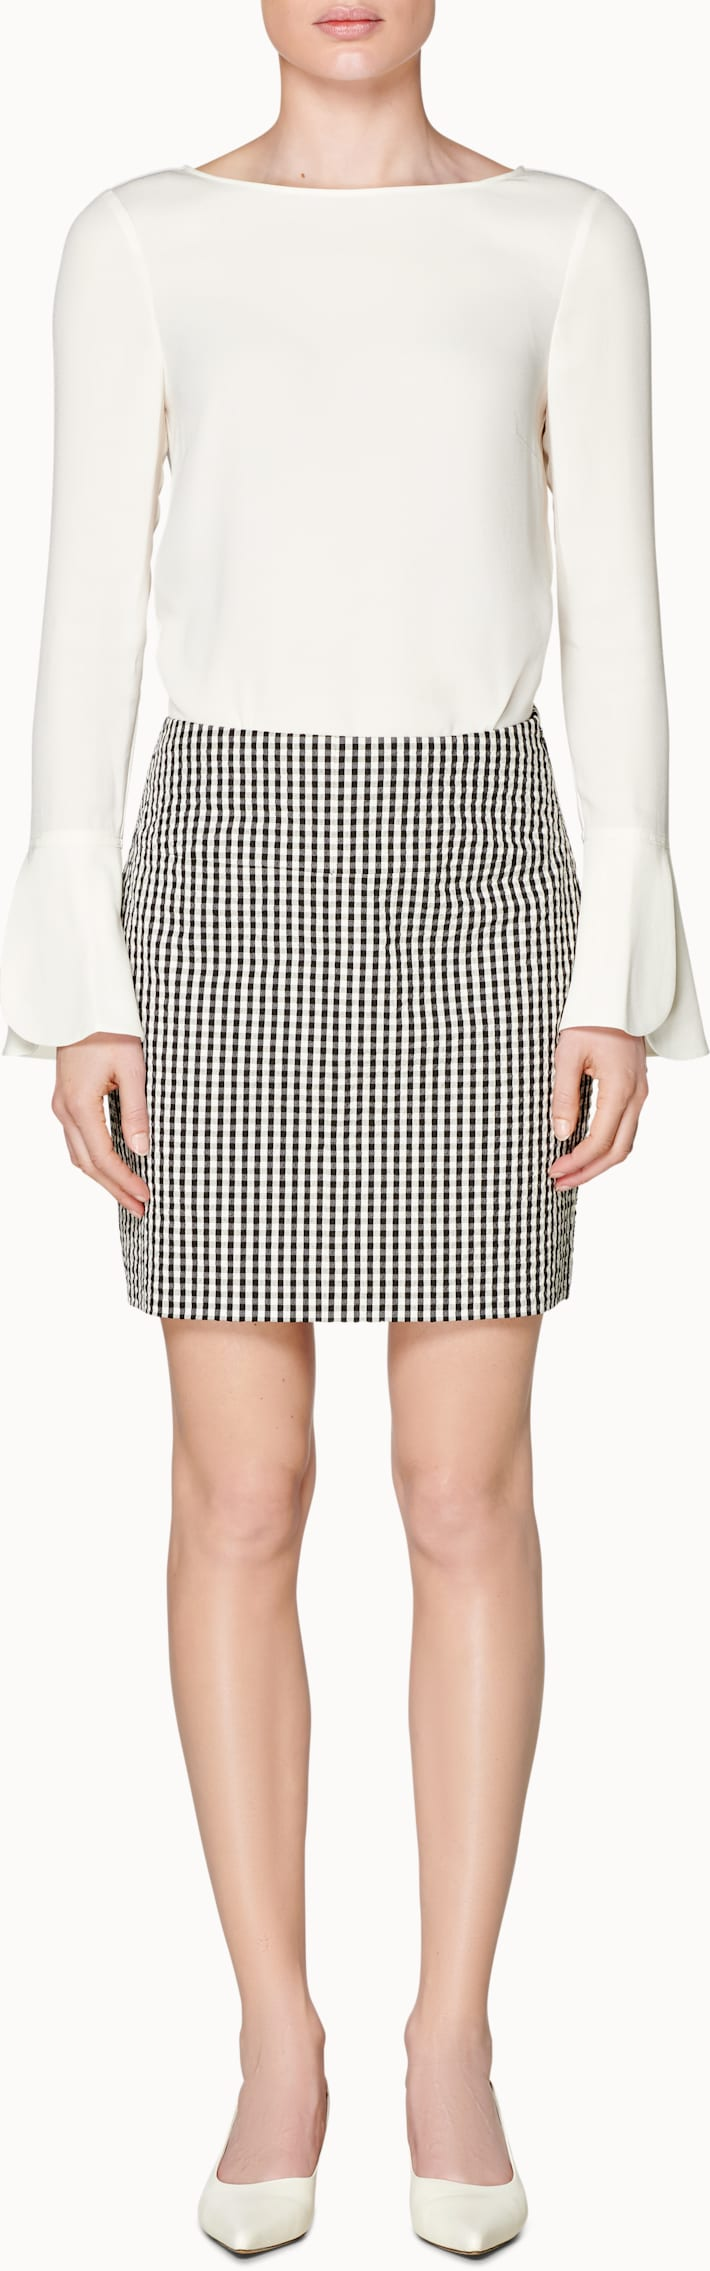 Grey Checked Skirt